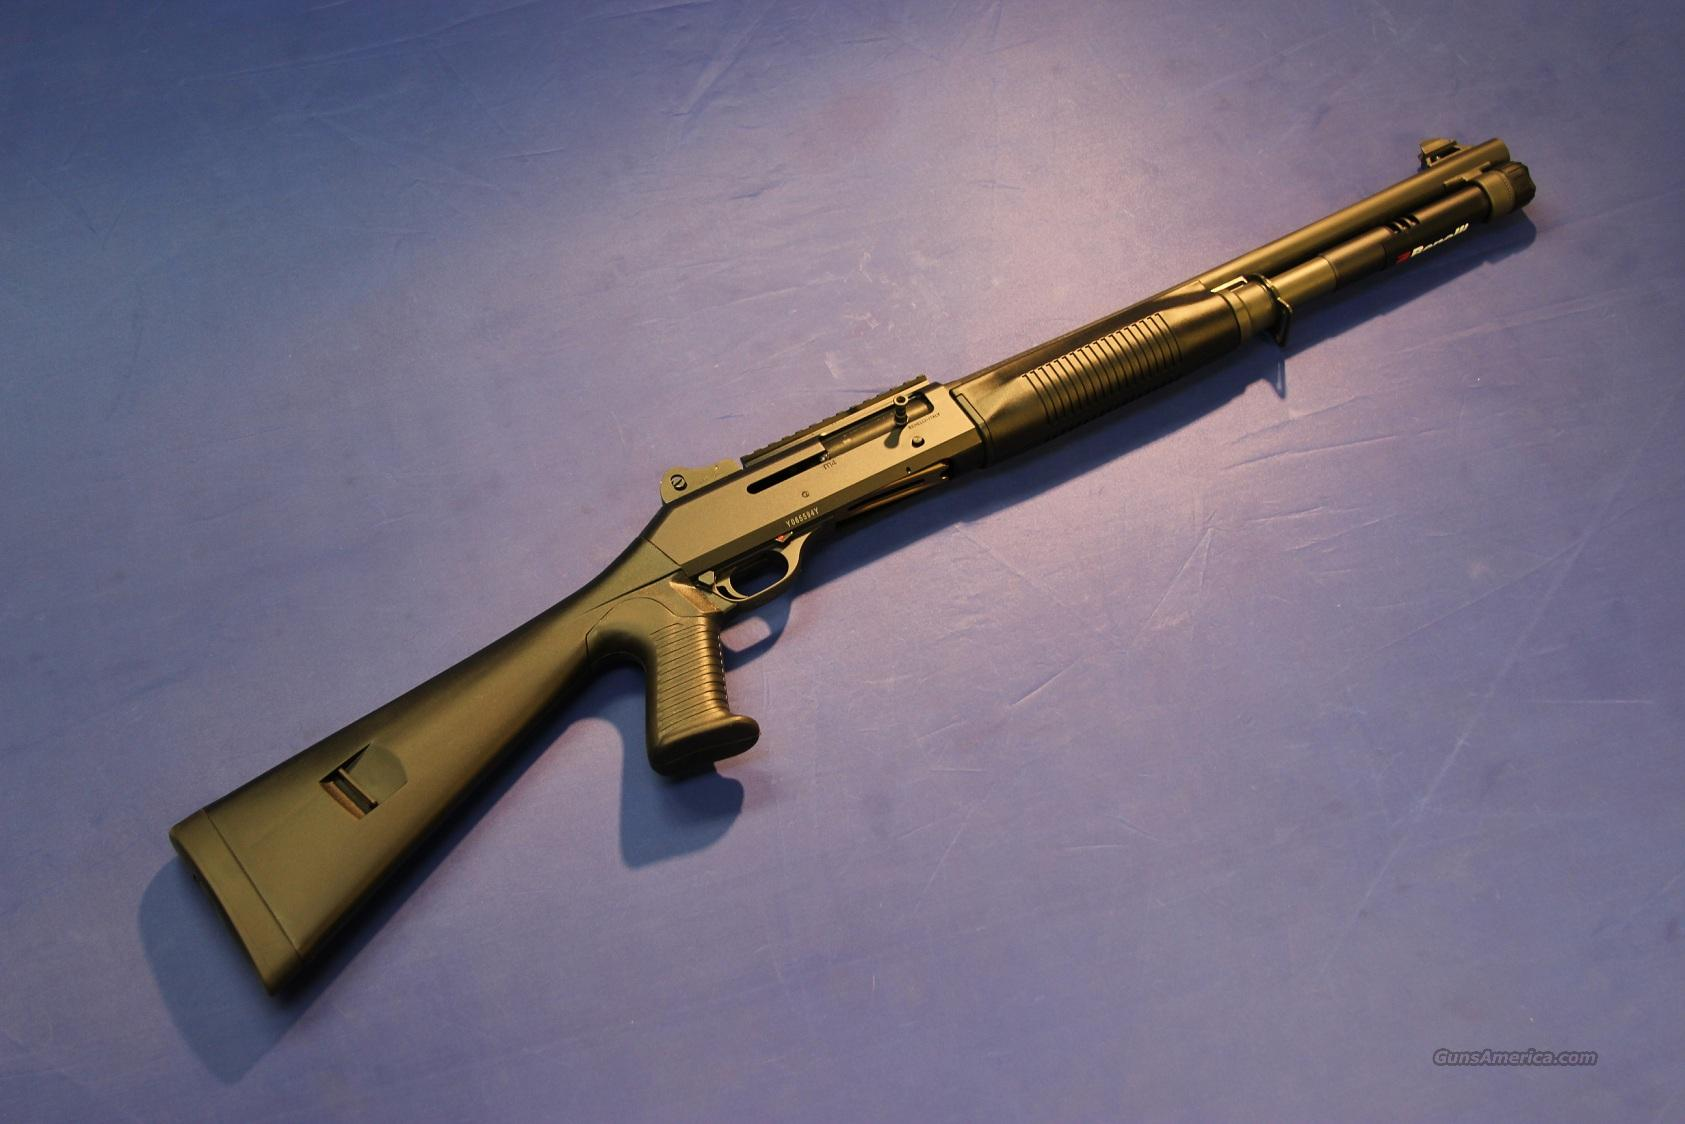 BENELLI M4 TACTICAL 11707 12 GA - NEW!  Guns > Shotguns > Benelli Shotguns > Tactical